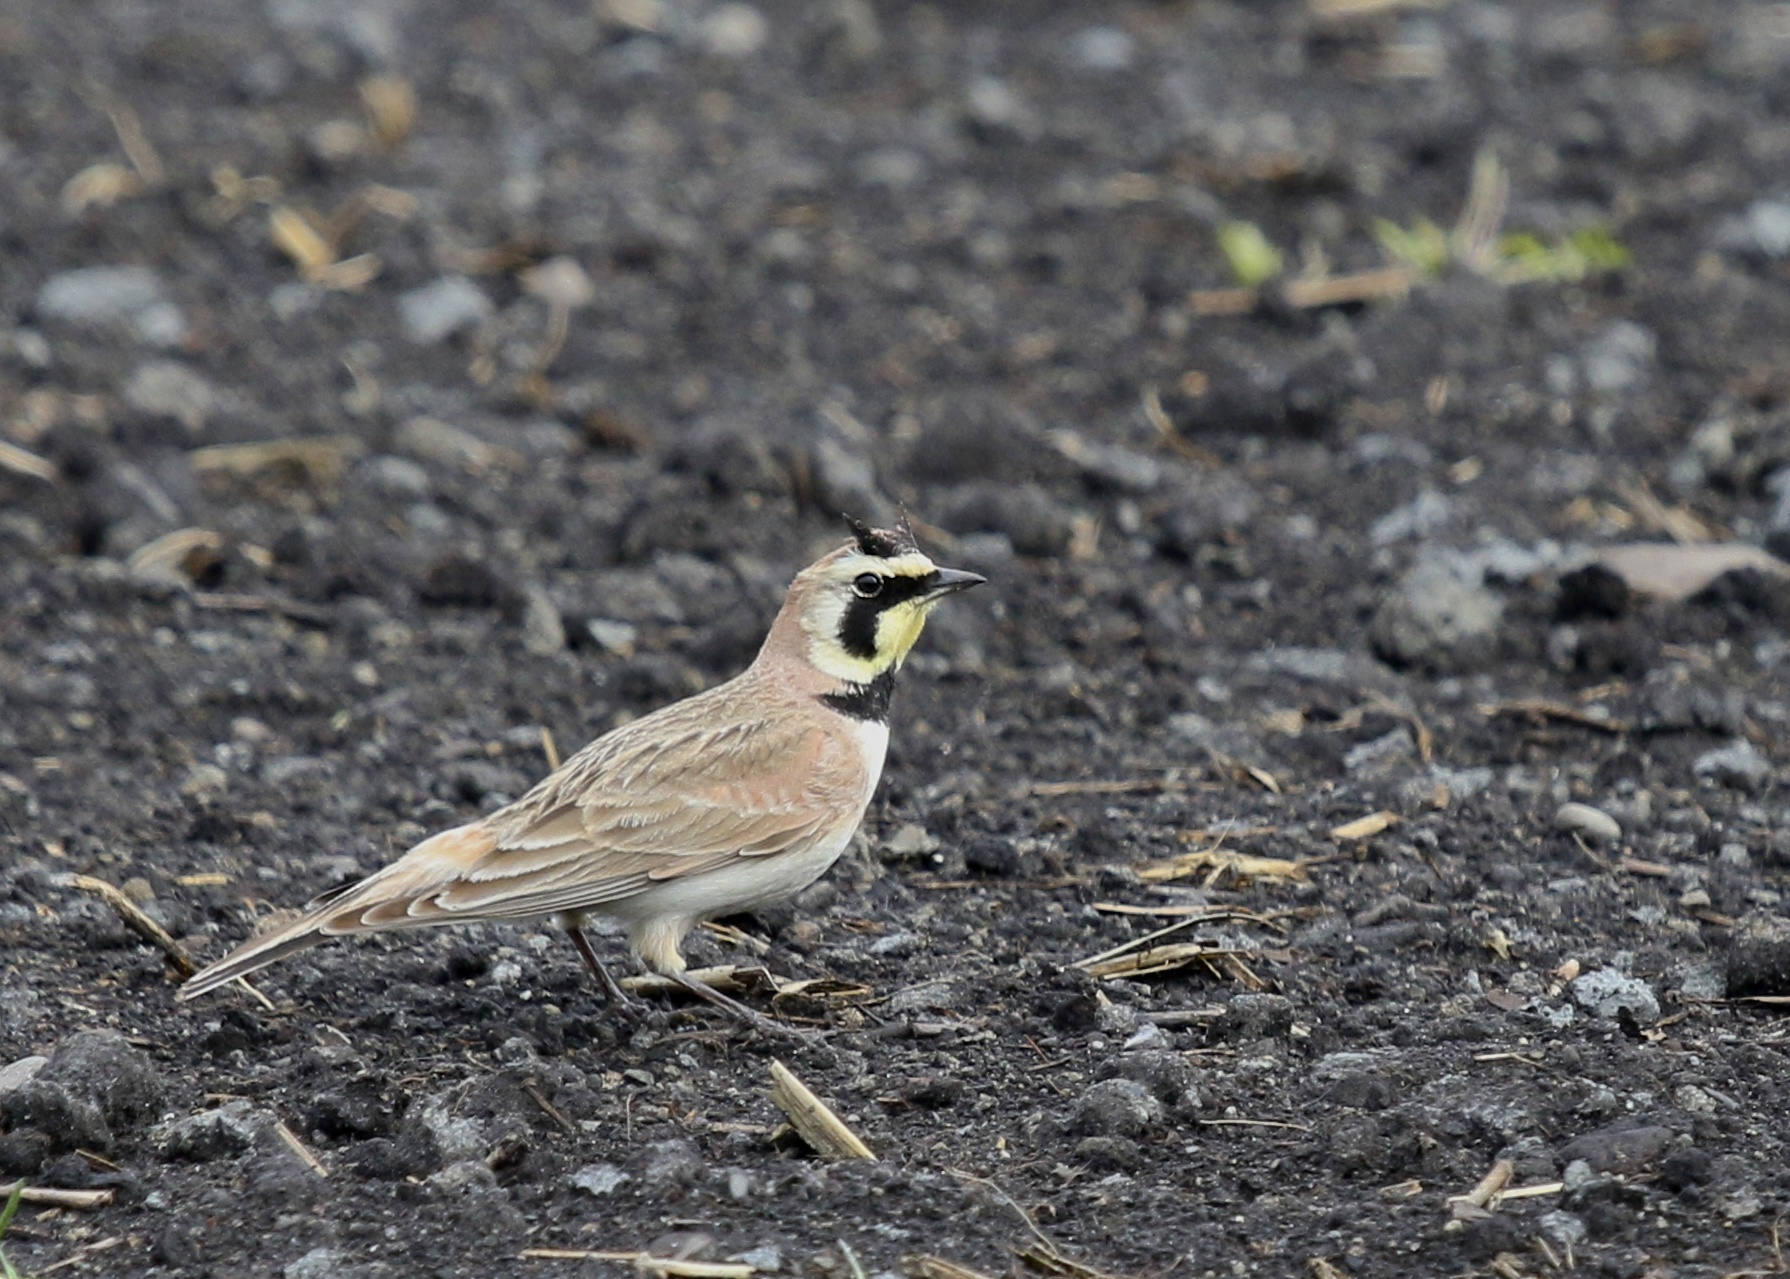 A Horned Lark shows off his namesake. Pine Island Turf Nursery, 5/8/14.